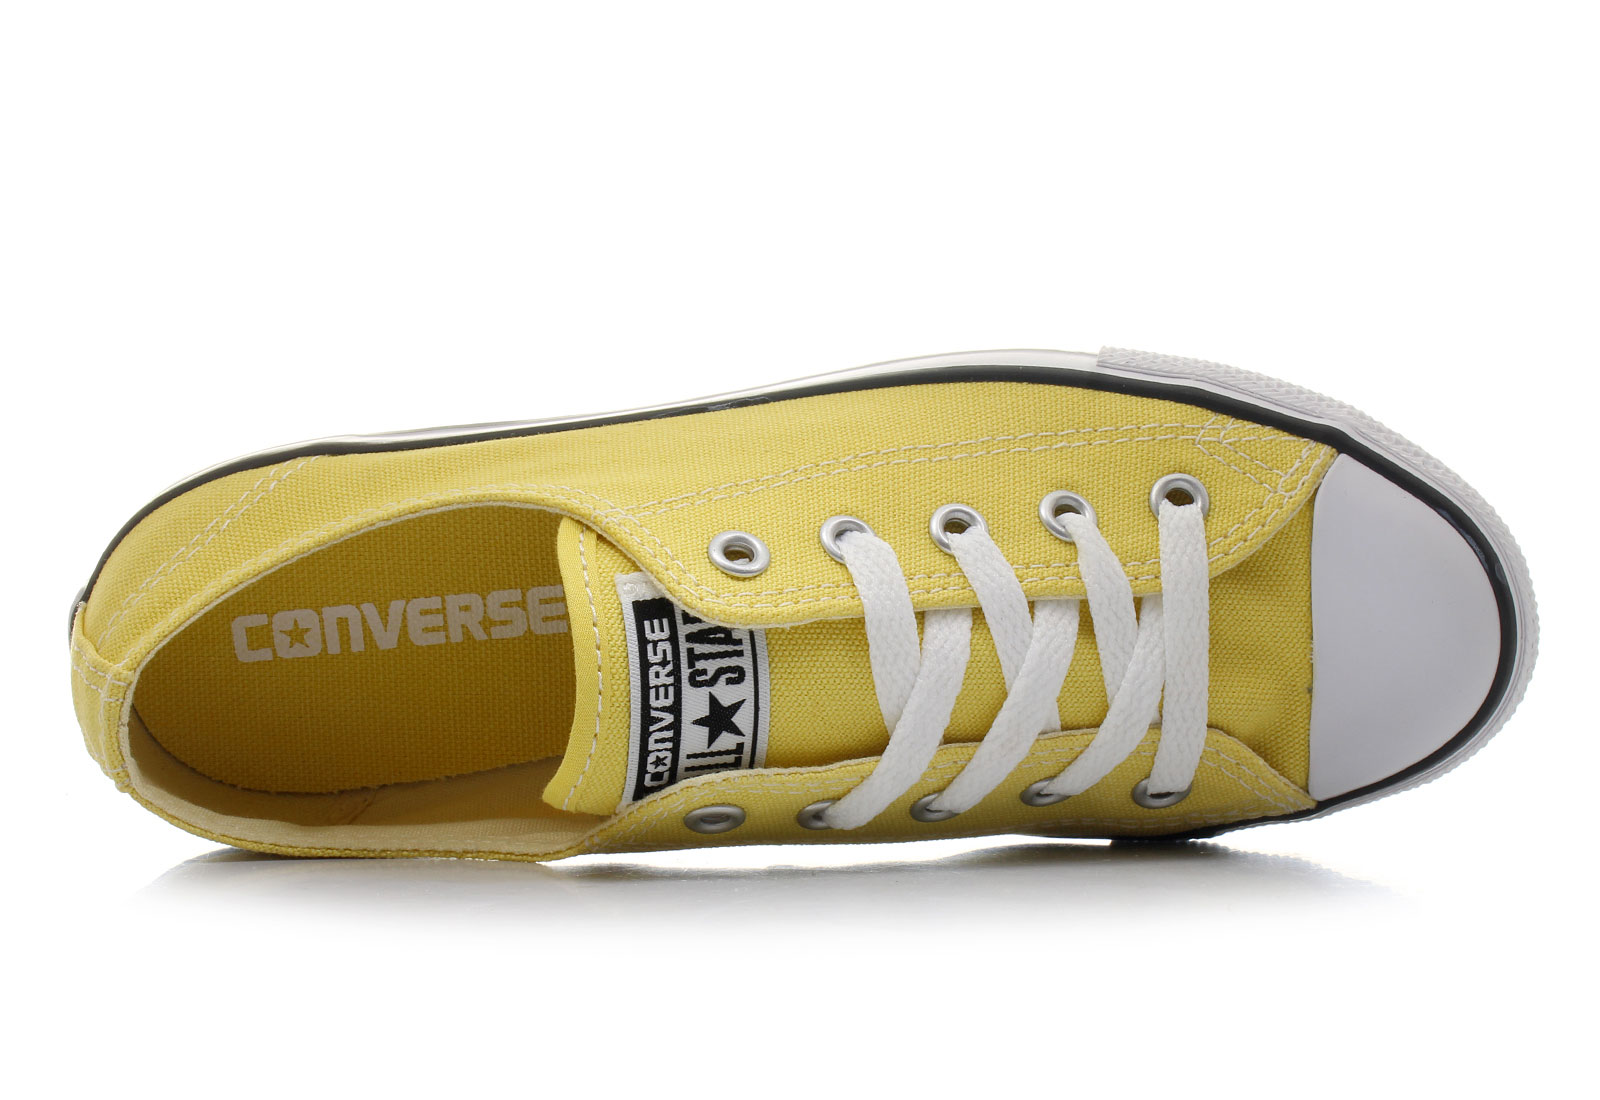 d47a0c87d5f0c8 Converse Sneakers - Chuck Taylor All Star Dainty Ox - 551513C ...